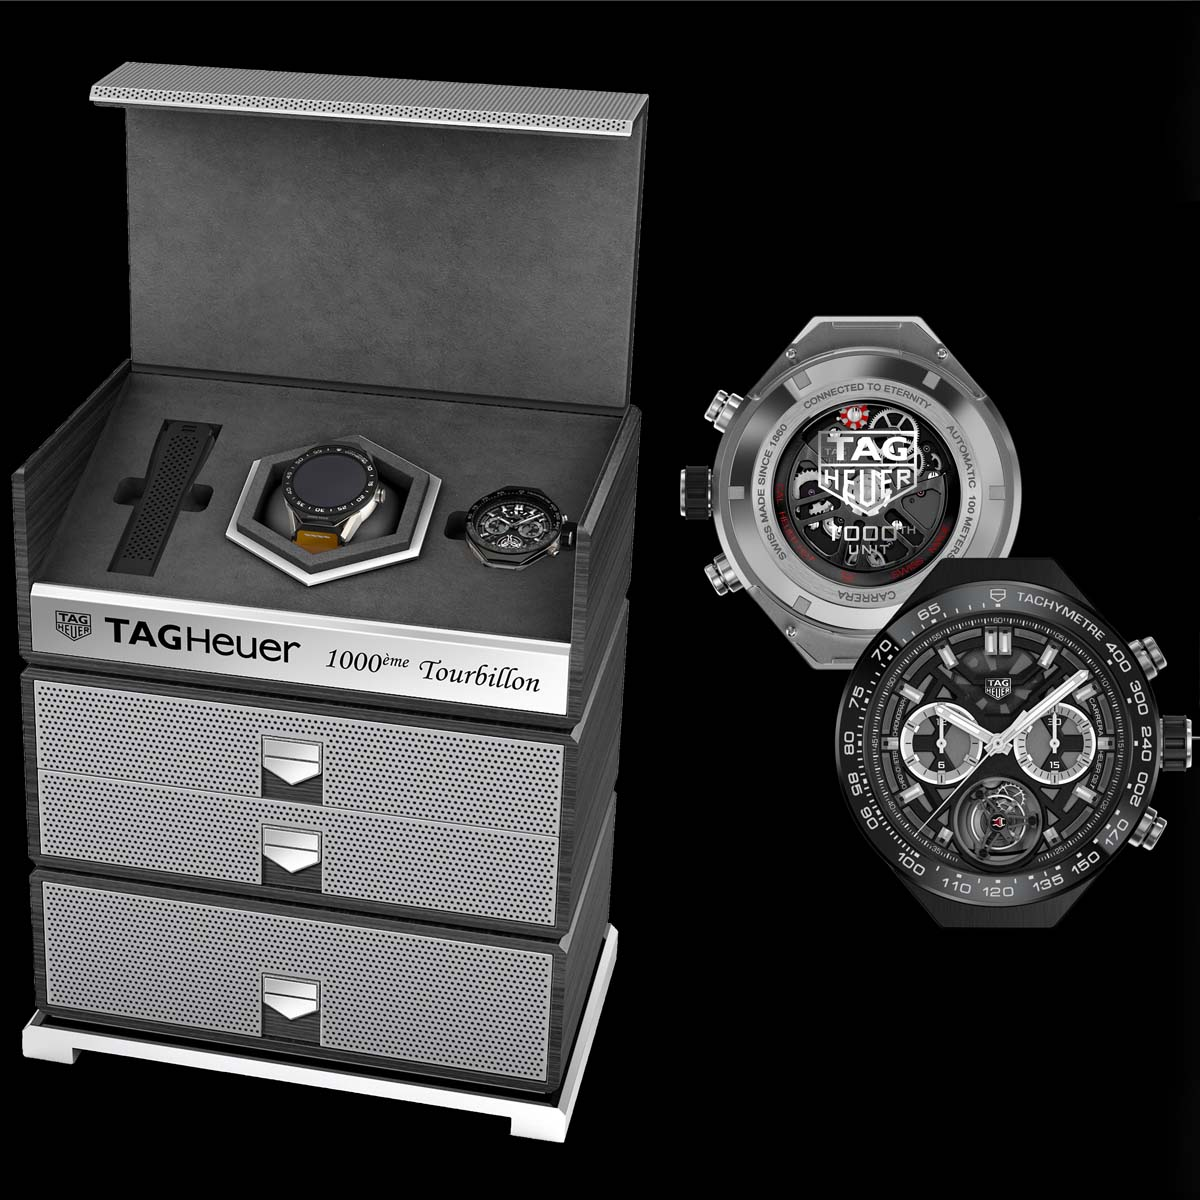 The Watch Quote: Photo - TAG Heuer announces the arrival of the thousandthCOSC certified Tourbillon movement